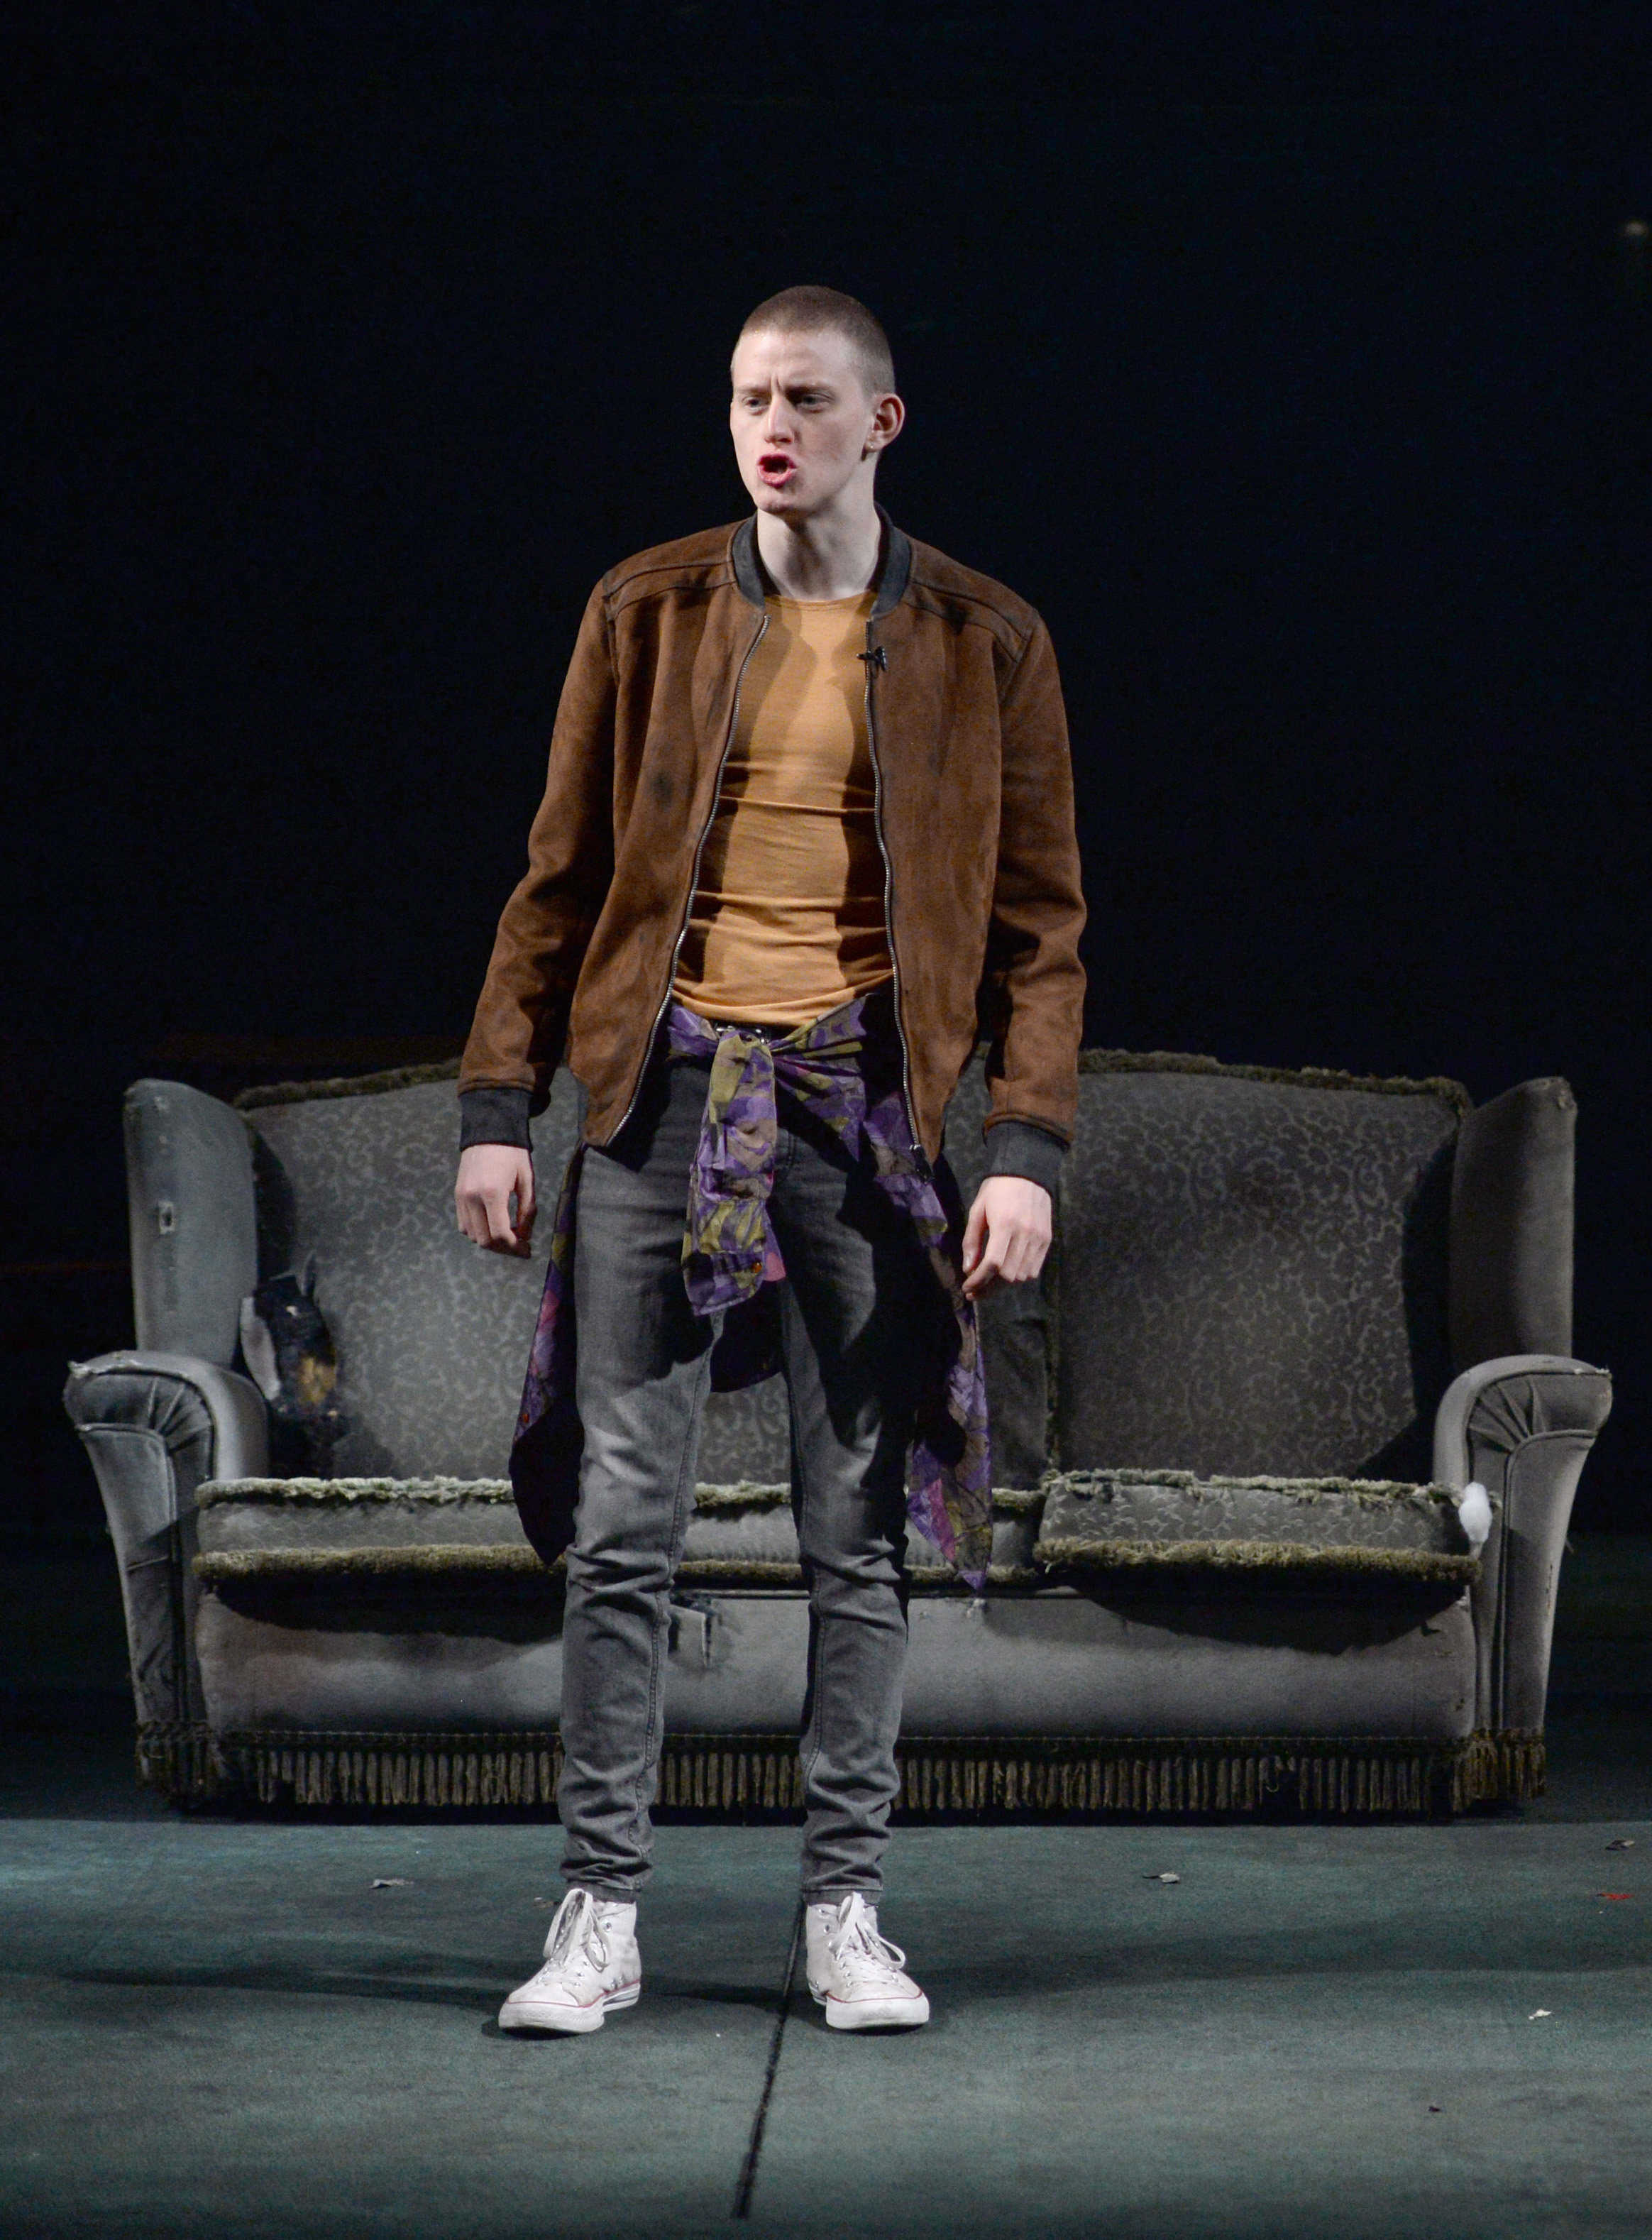 Lorn MacDonald (Renton) rehearse a scene in a brand new production of Trainspotting which opens at the Citizens Theatre in Glasgow on Friday, September 16, 2016. Irvine Welsh's Trainspotting began its life in the Citizens Theatre 20 years ago, with th